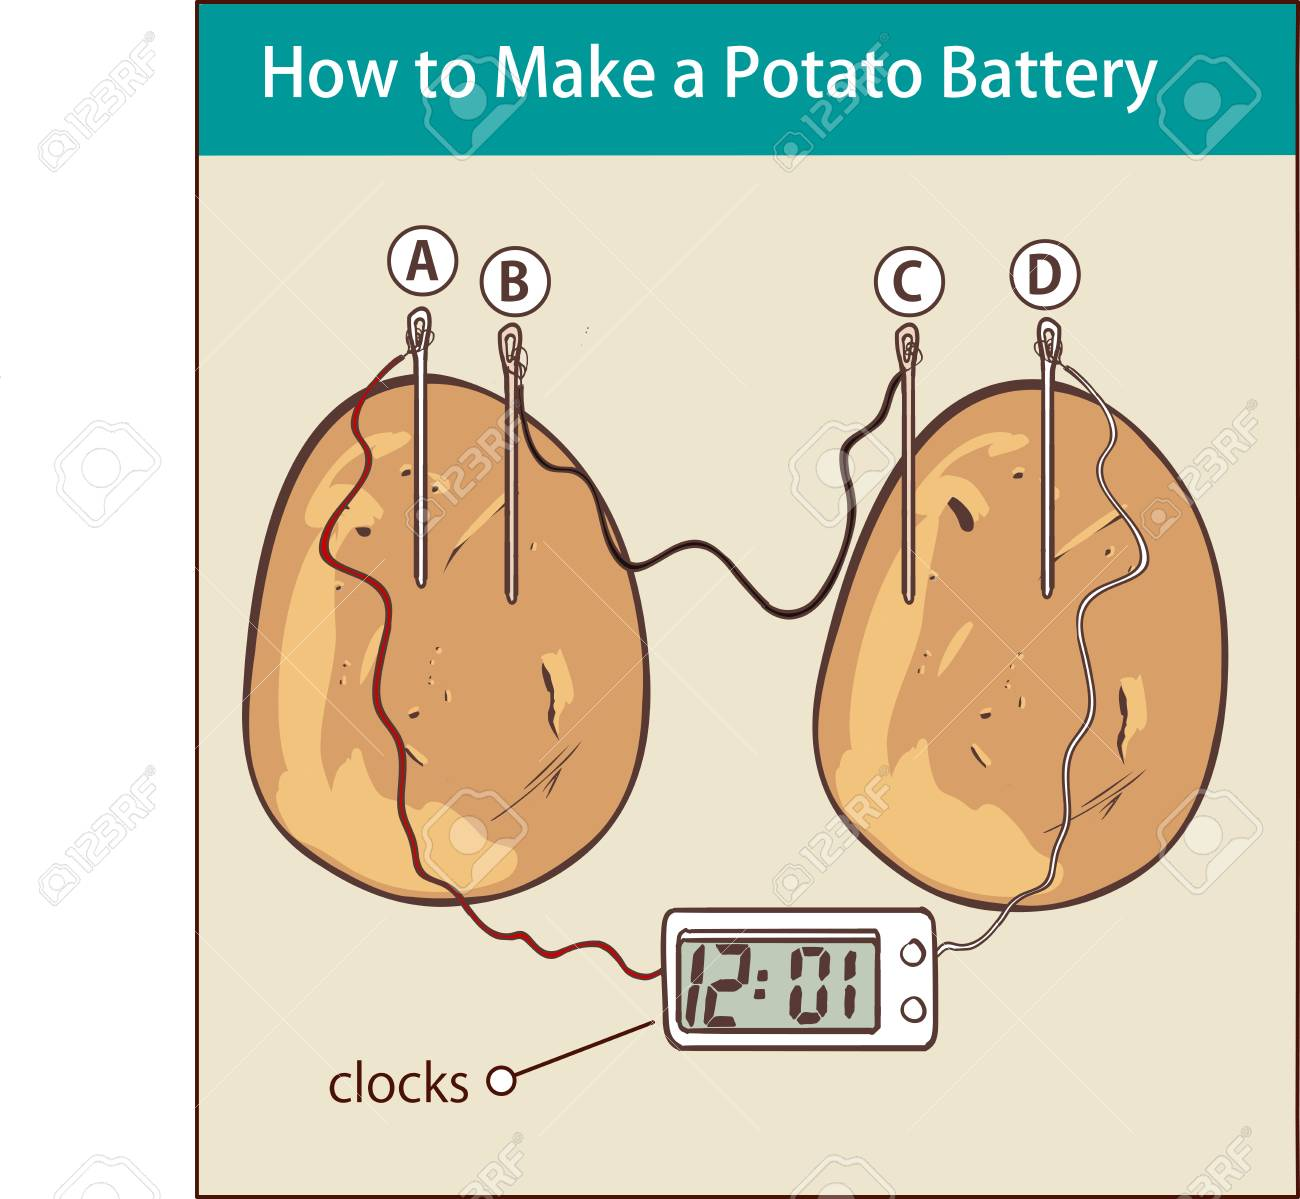 who invented the potato battery